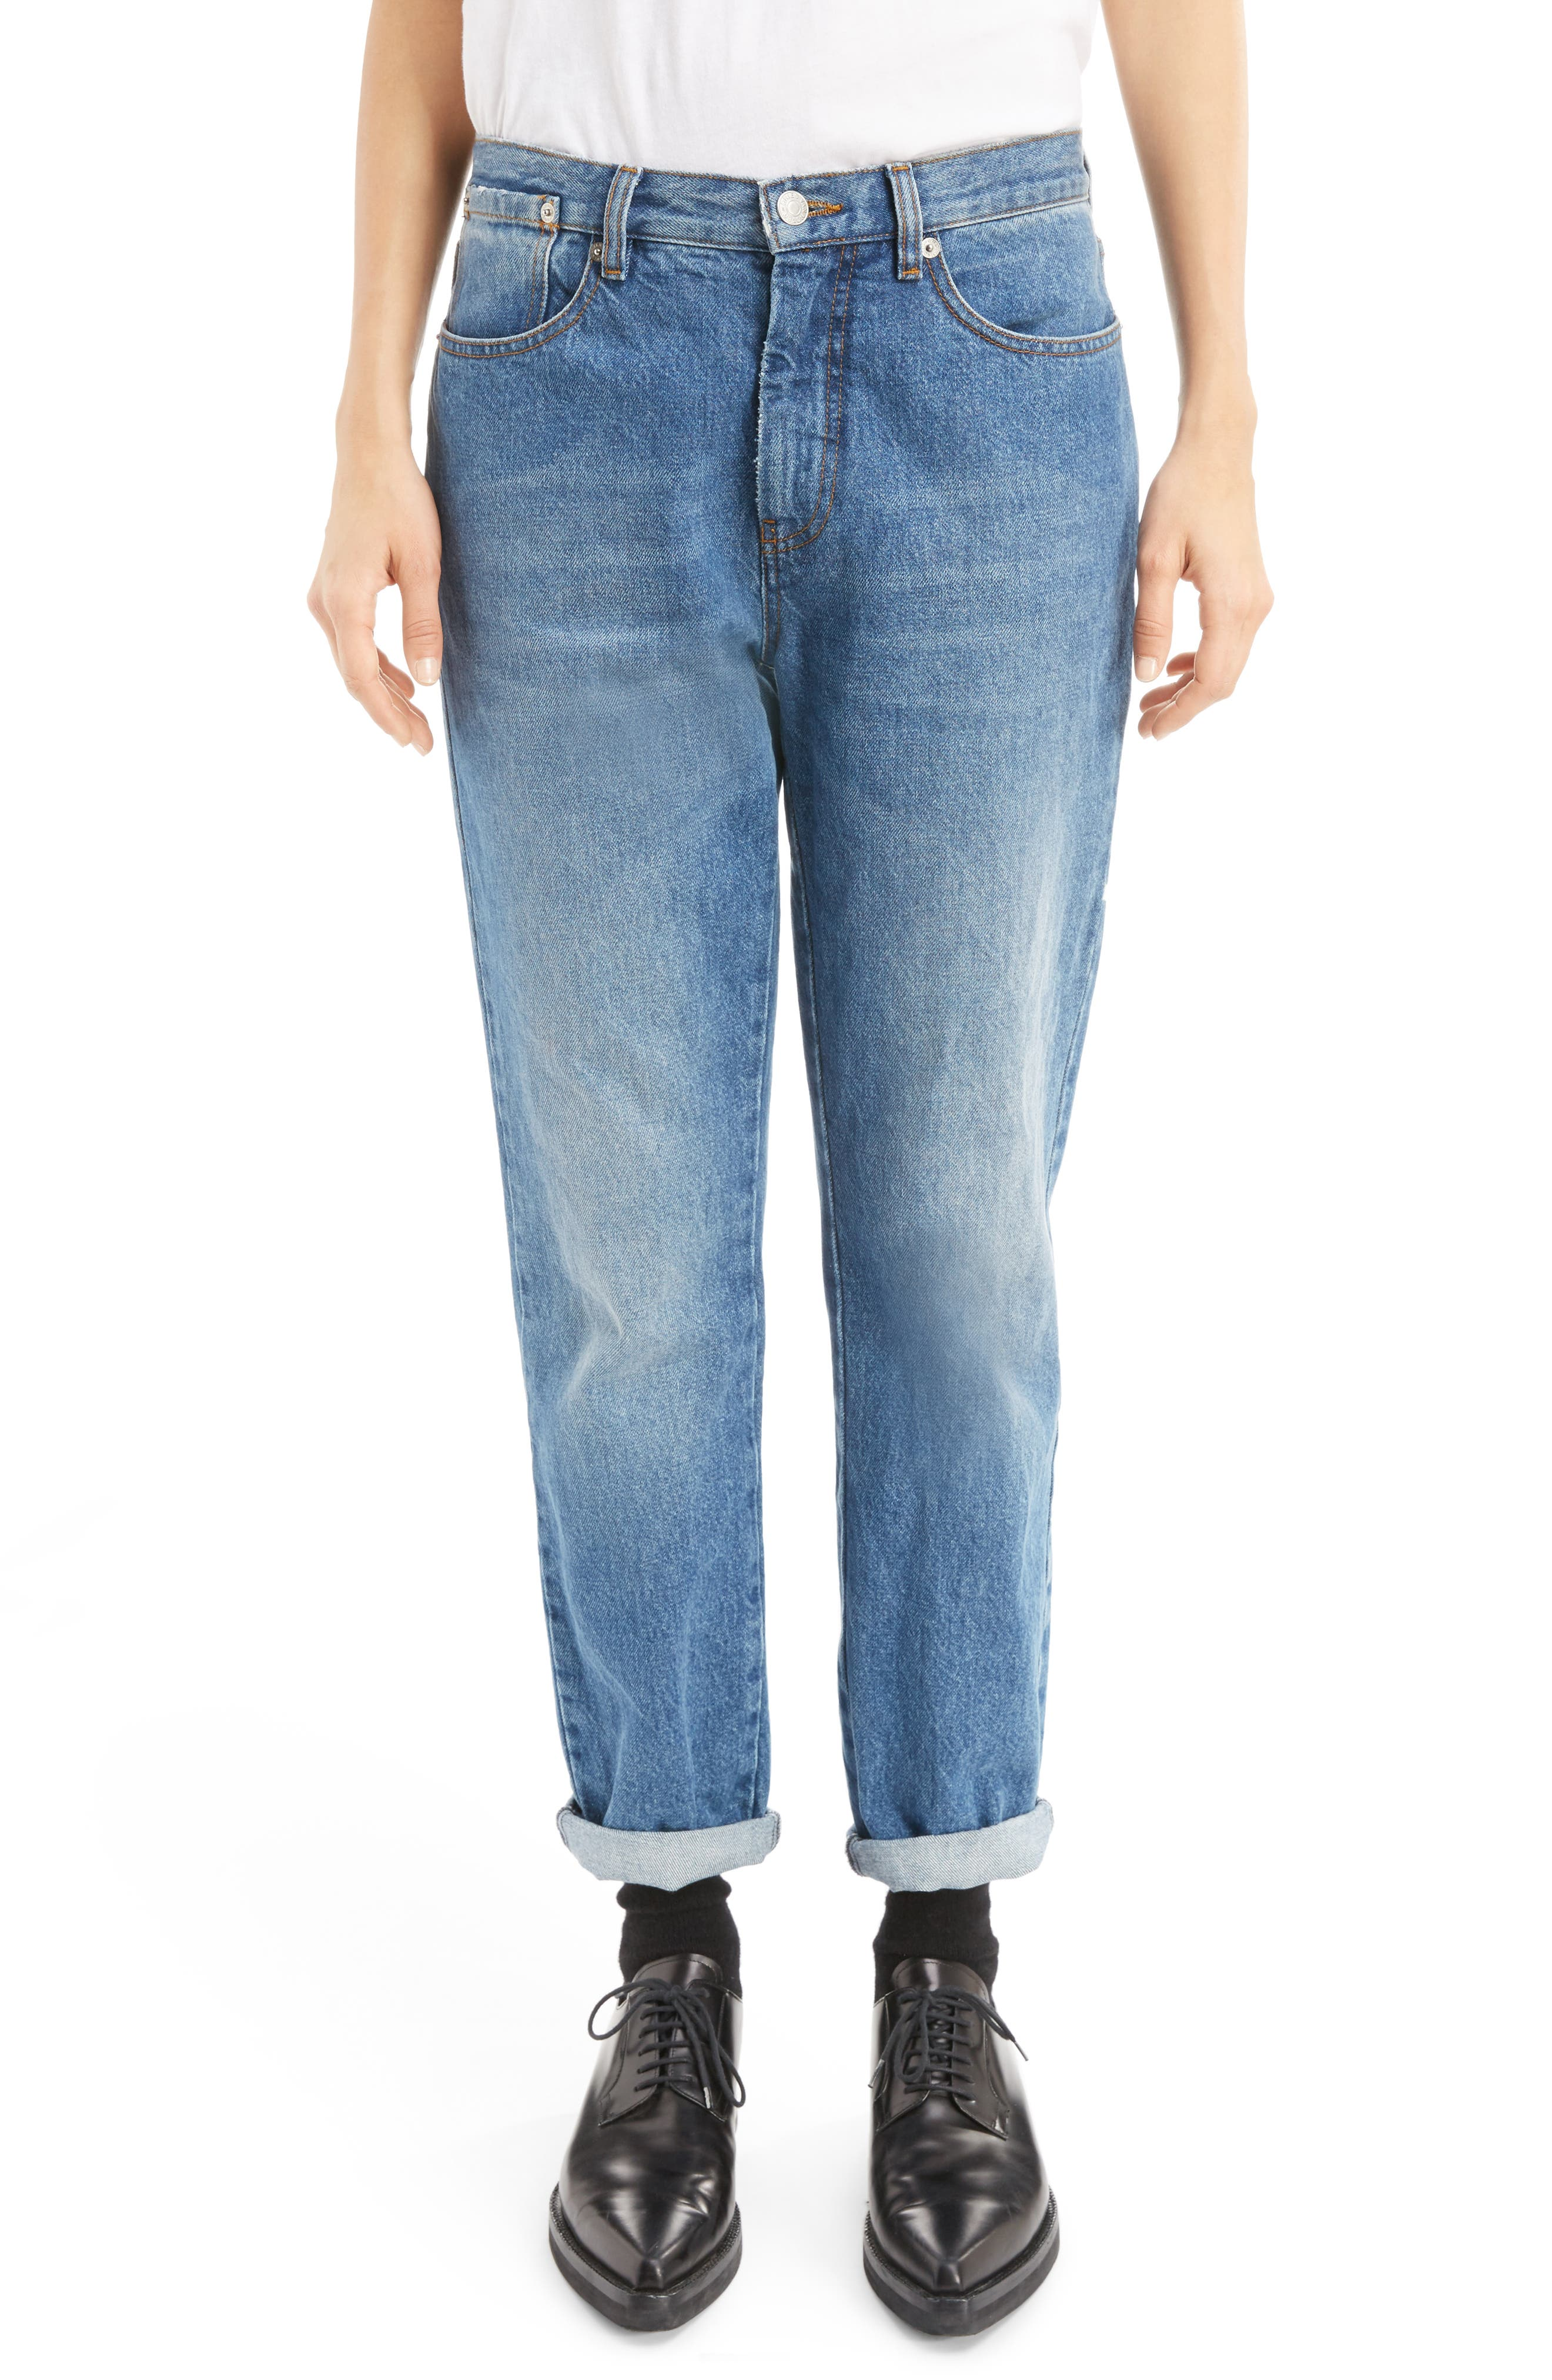 Alternate Image 1 Selected - Dries Van Noten Cuffed Straight Leg Jeans